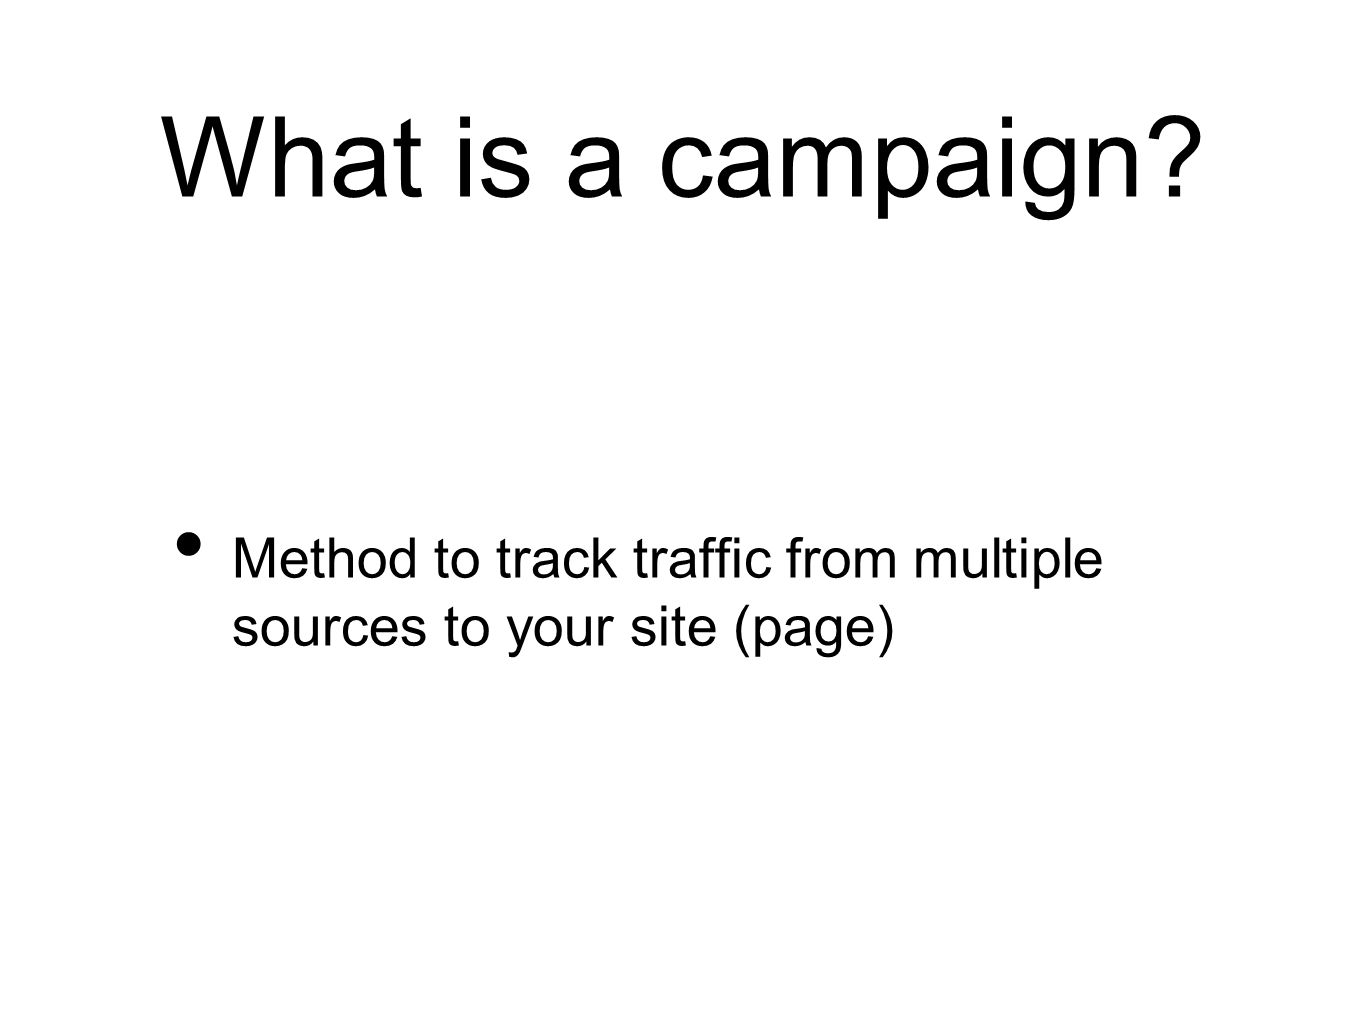 What is a campaign? Method to track traffic from multiple sources to your site (page)